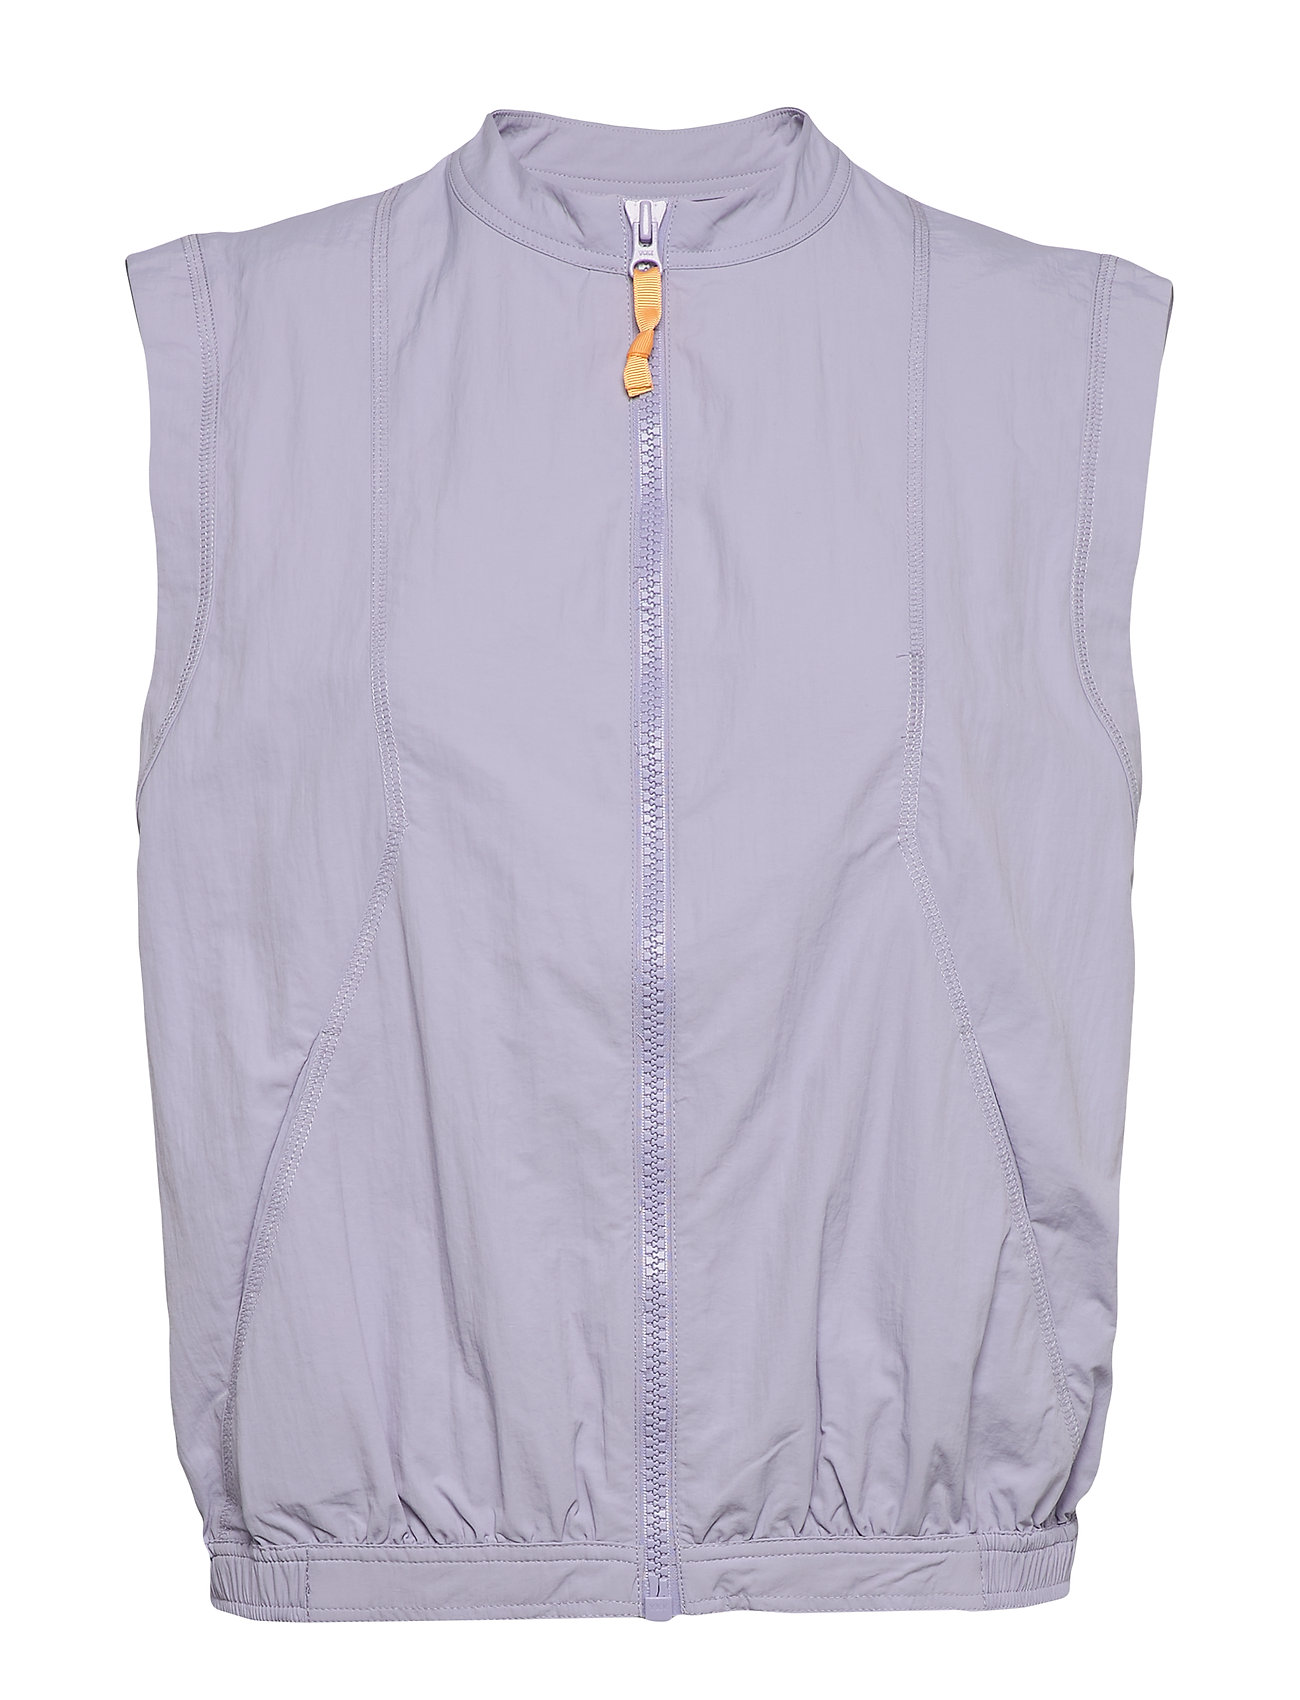 Image of Enkaren West 6729 Vests Padded Vests Blå Envii (3414562303)